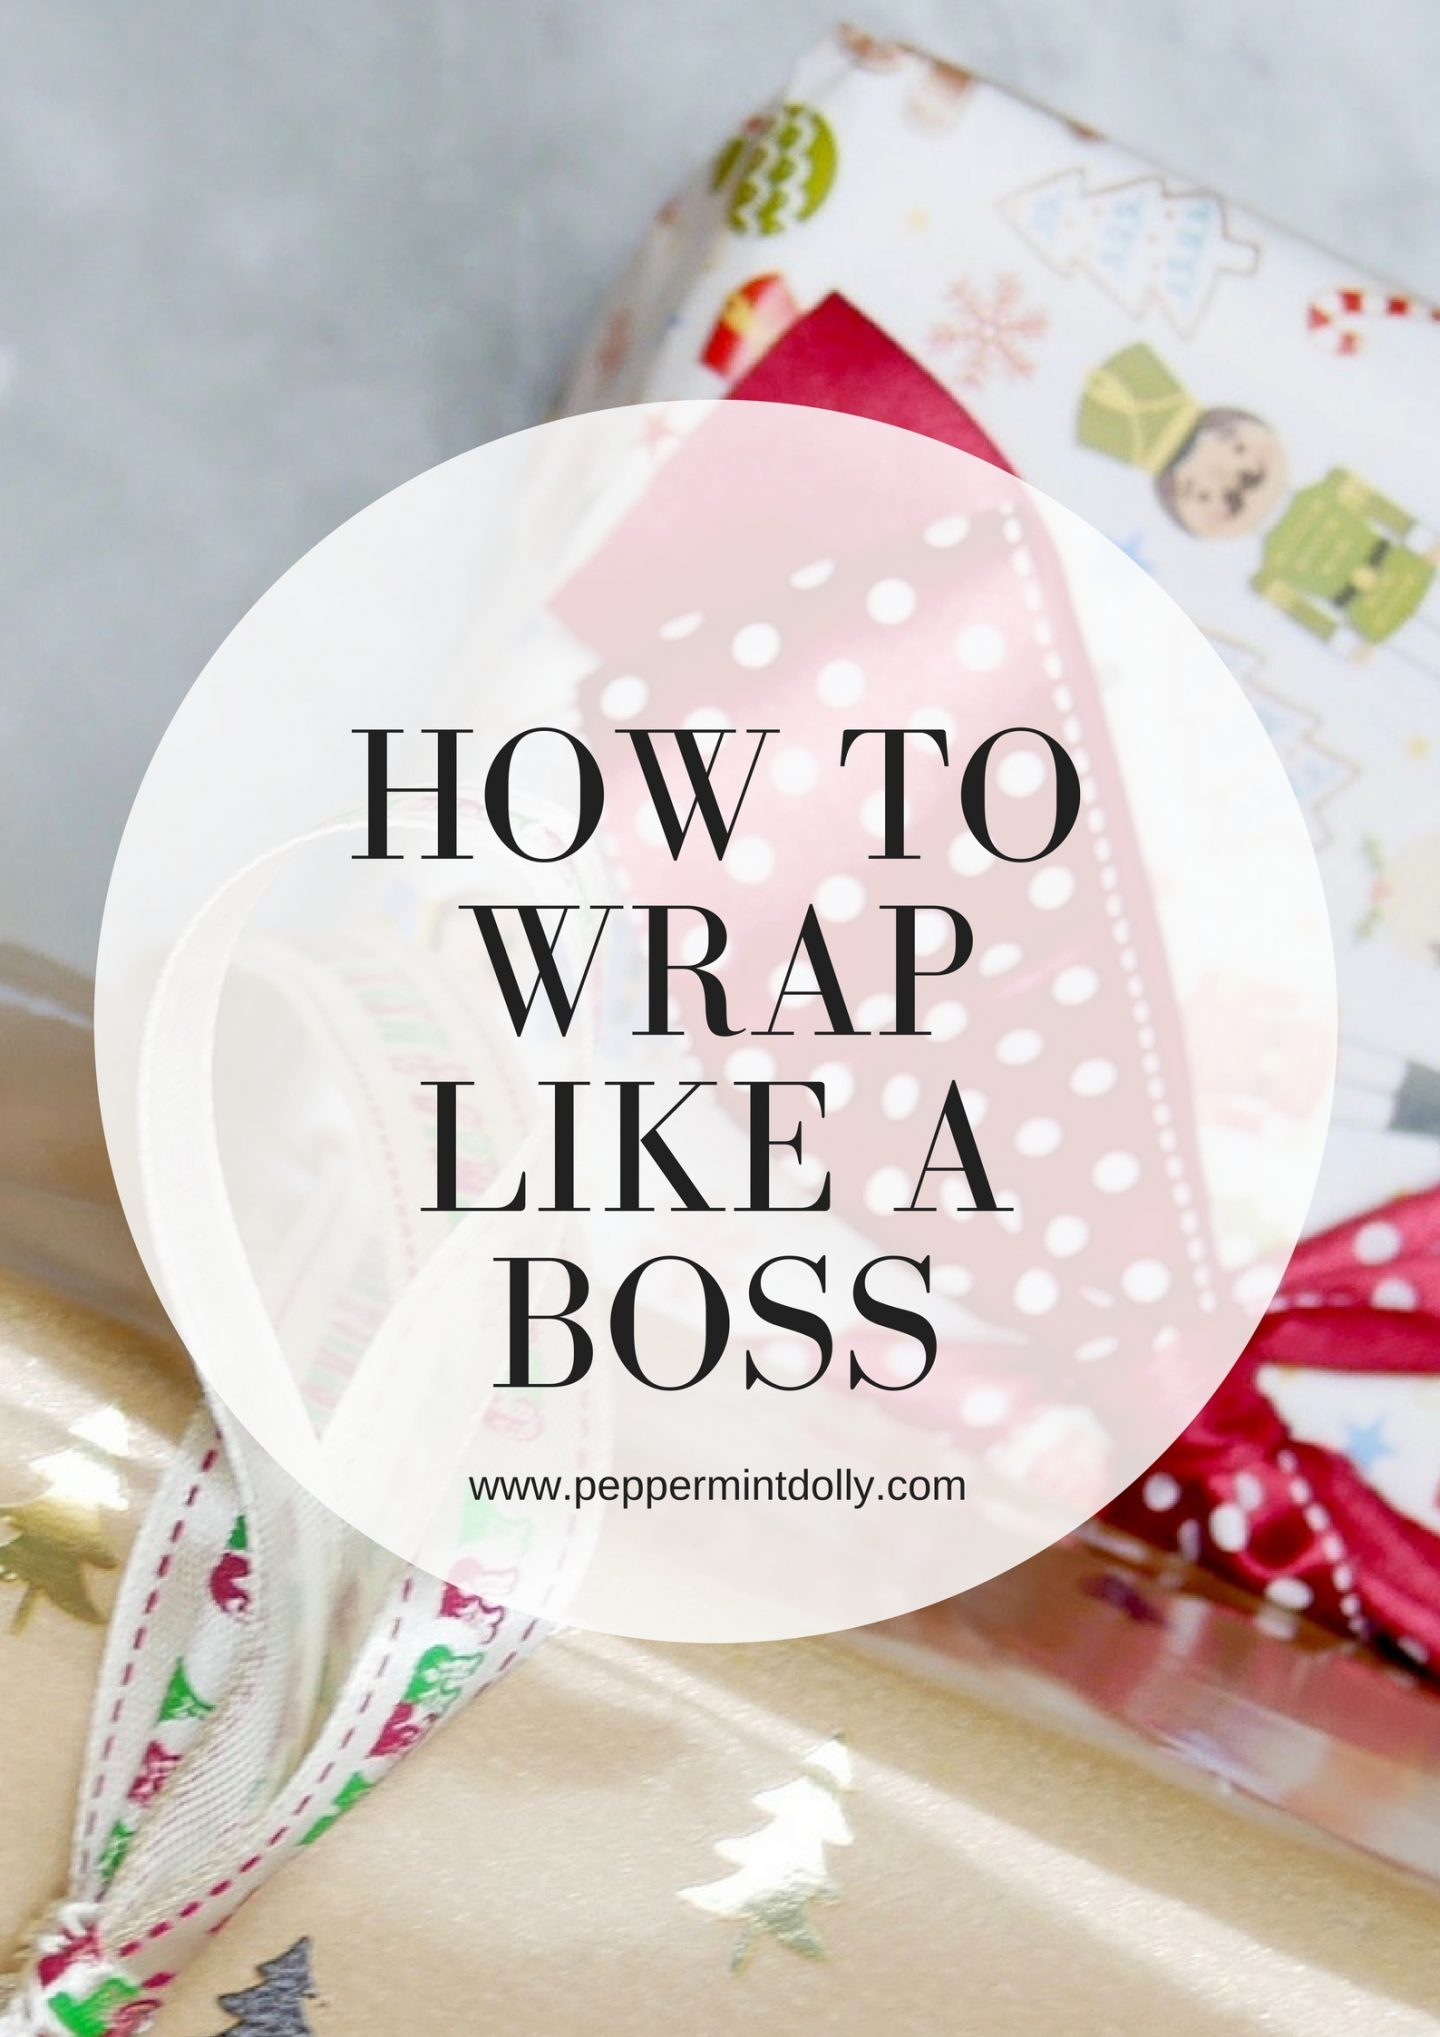 Wrap Like A Boss